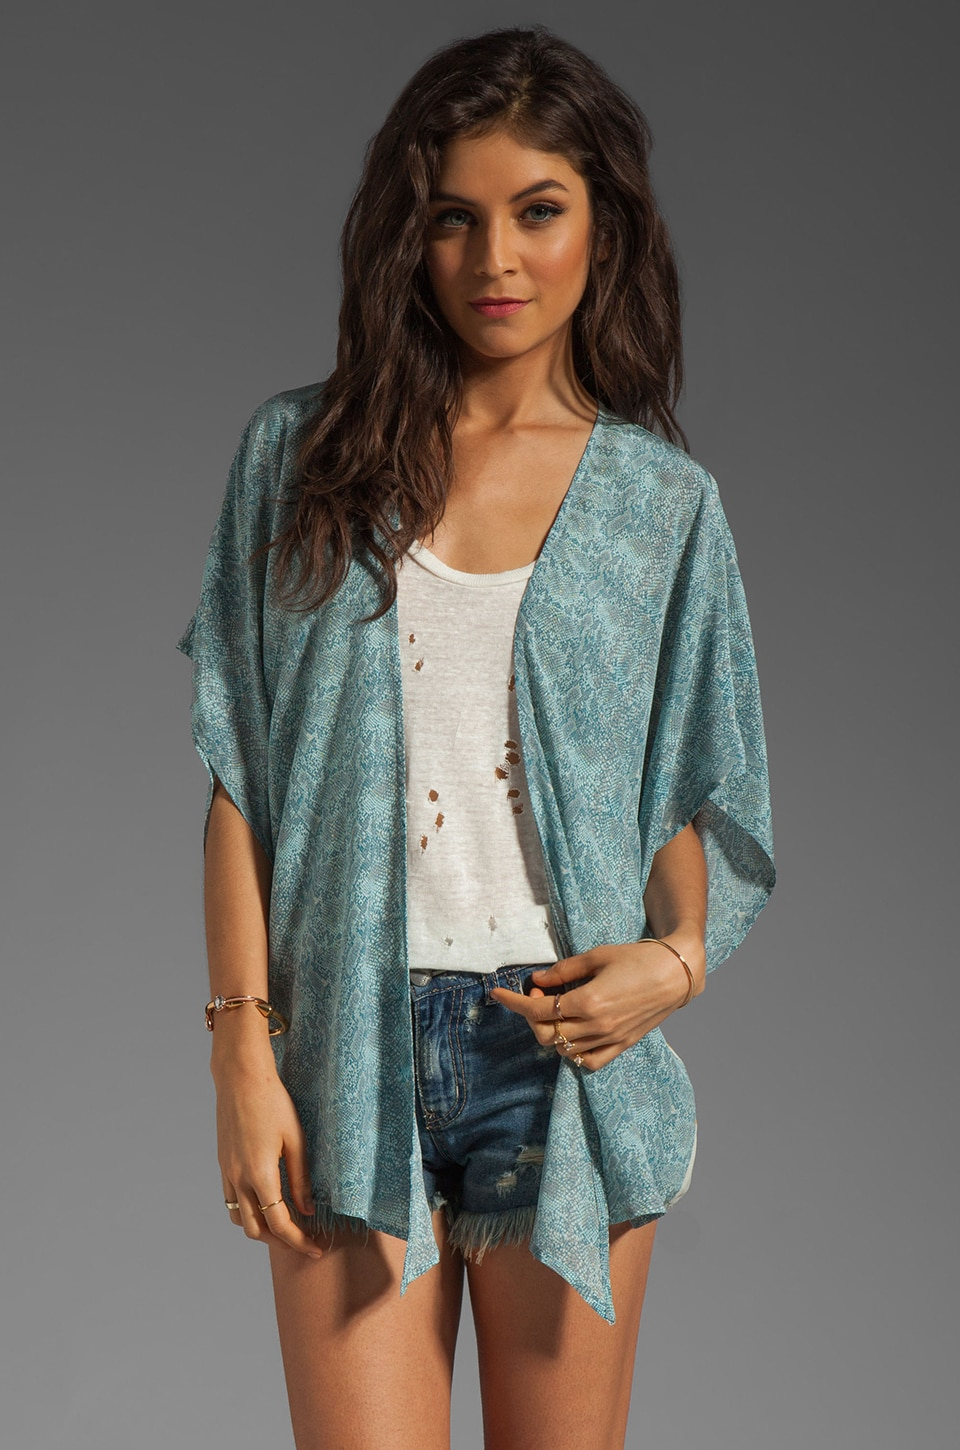 Winter Kate Luna Bed Jacket in Python Mint